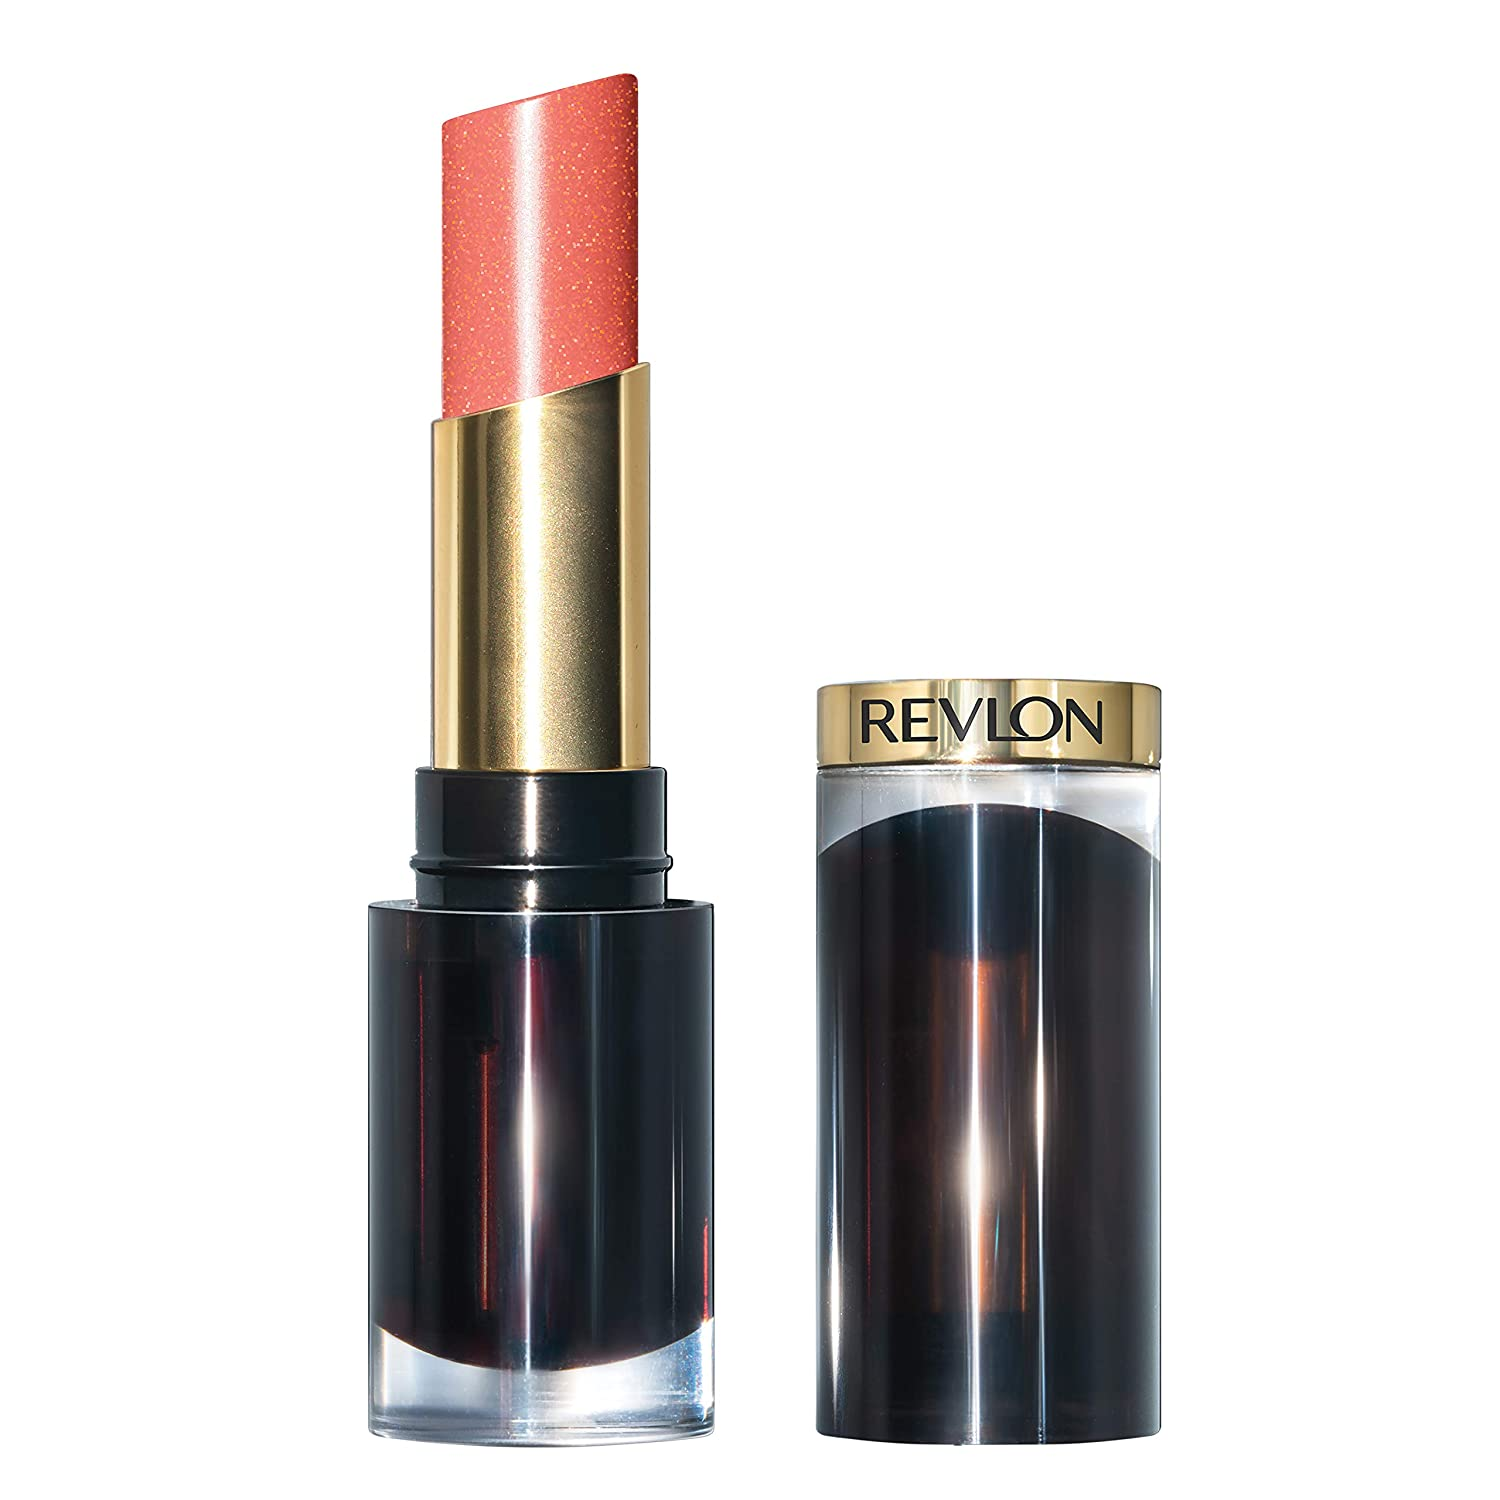 Revlon Super Lustrous Glass Shine Lipstick, Moisturizing Lipstick with Aloe and Rose Quartz in Coral, 019 Dewy Peach, 0.15 oz